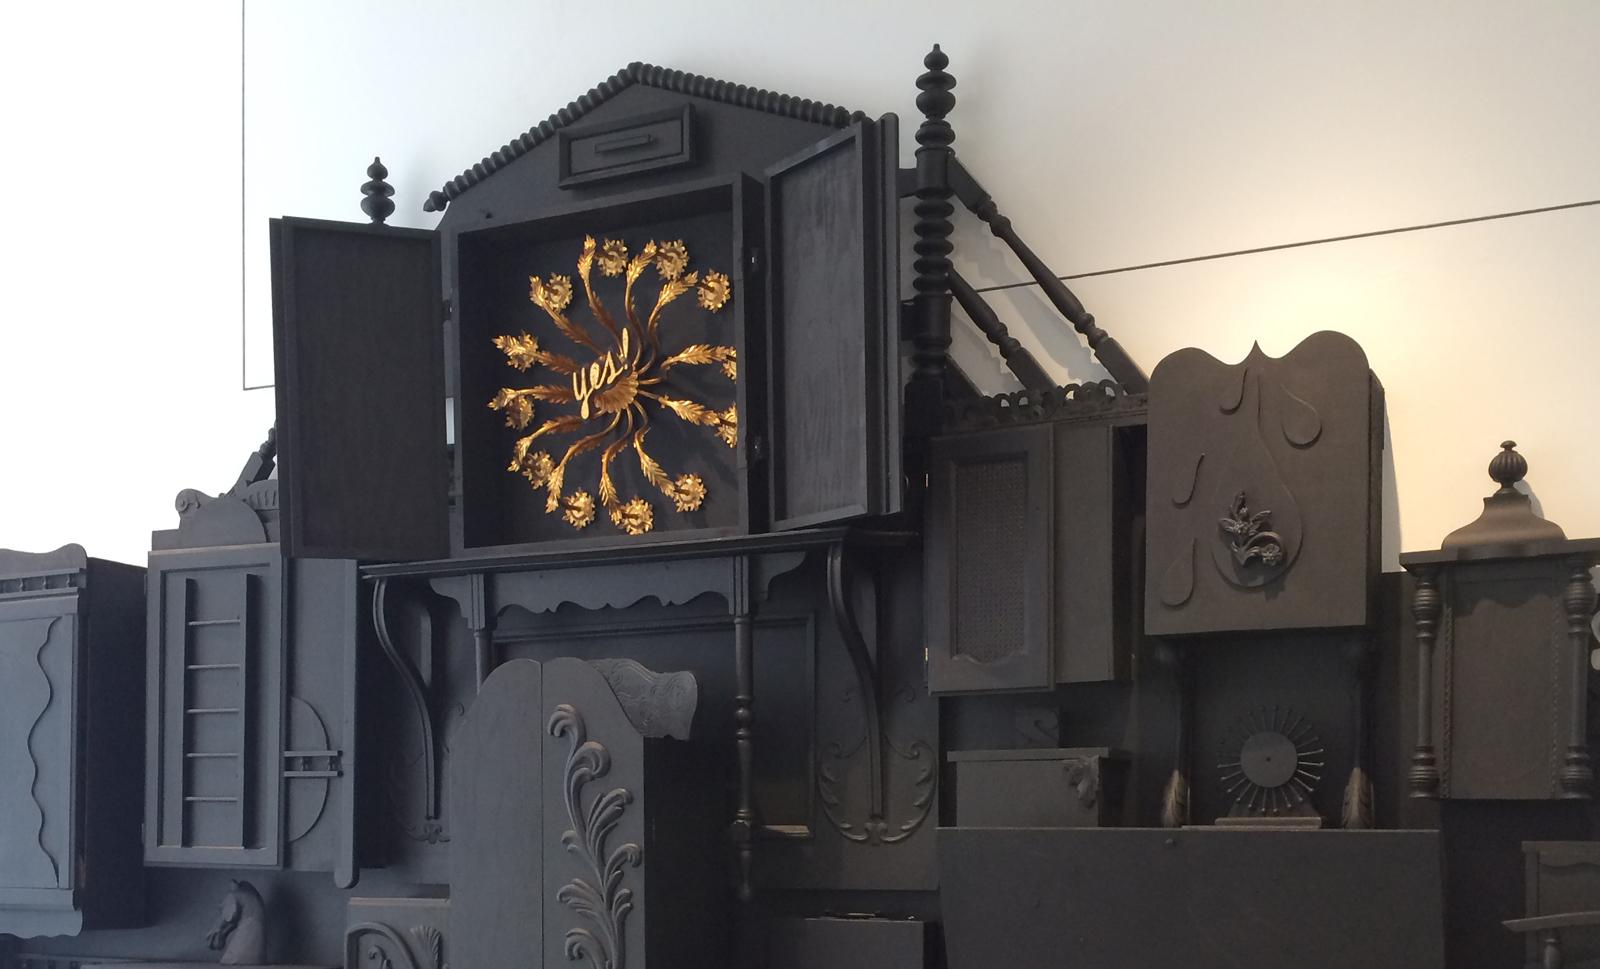 A collection of wood structures painted black. One is open to a collage of found objects.